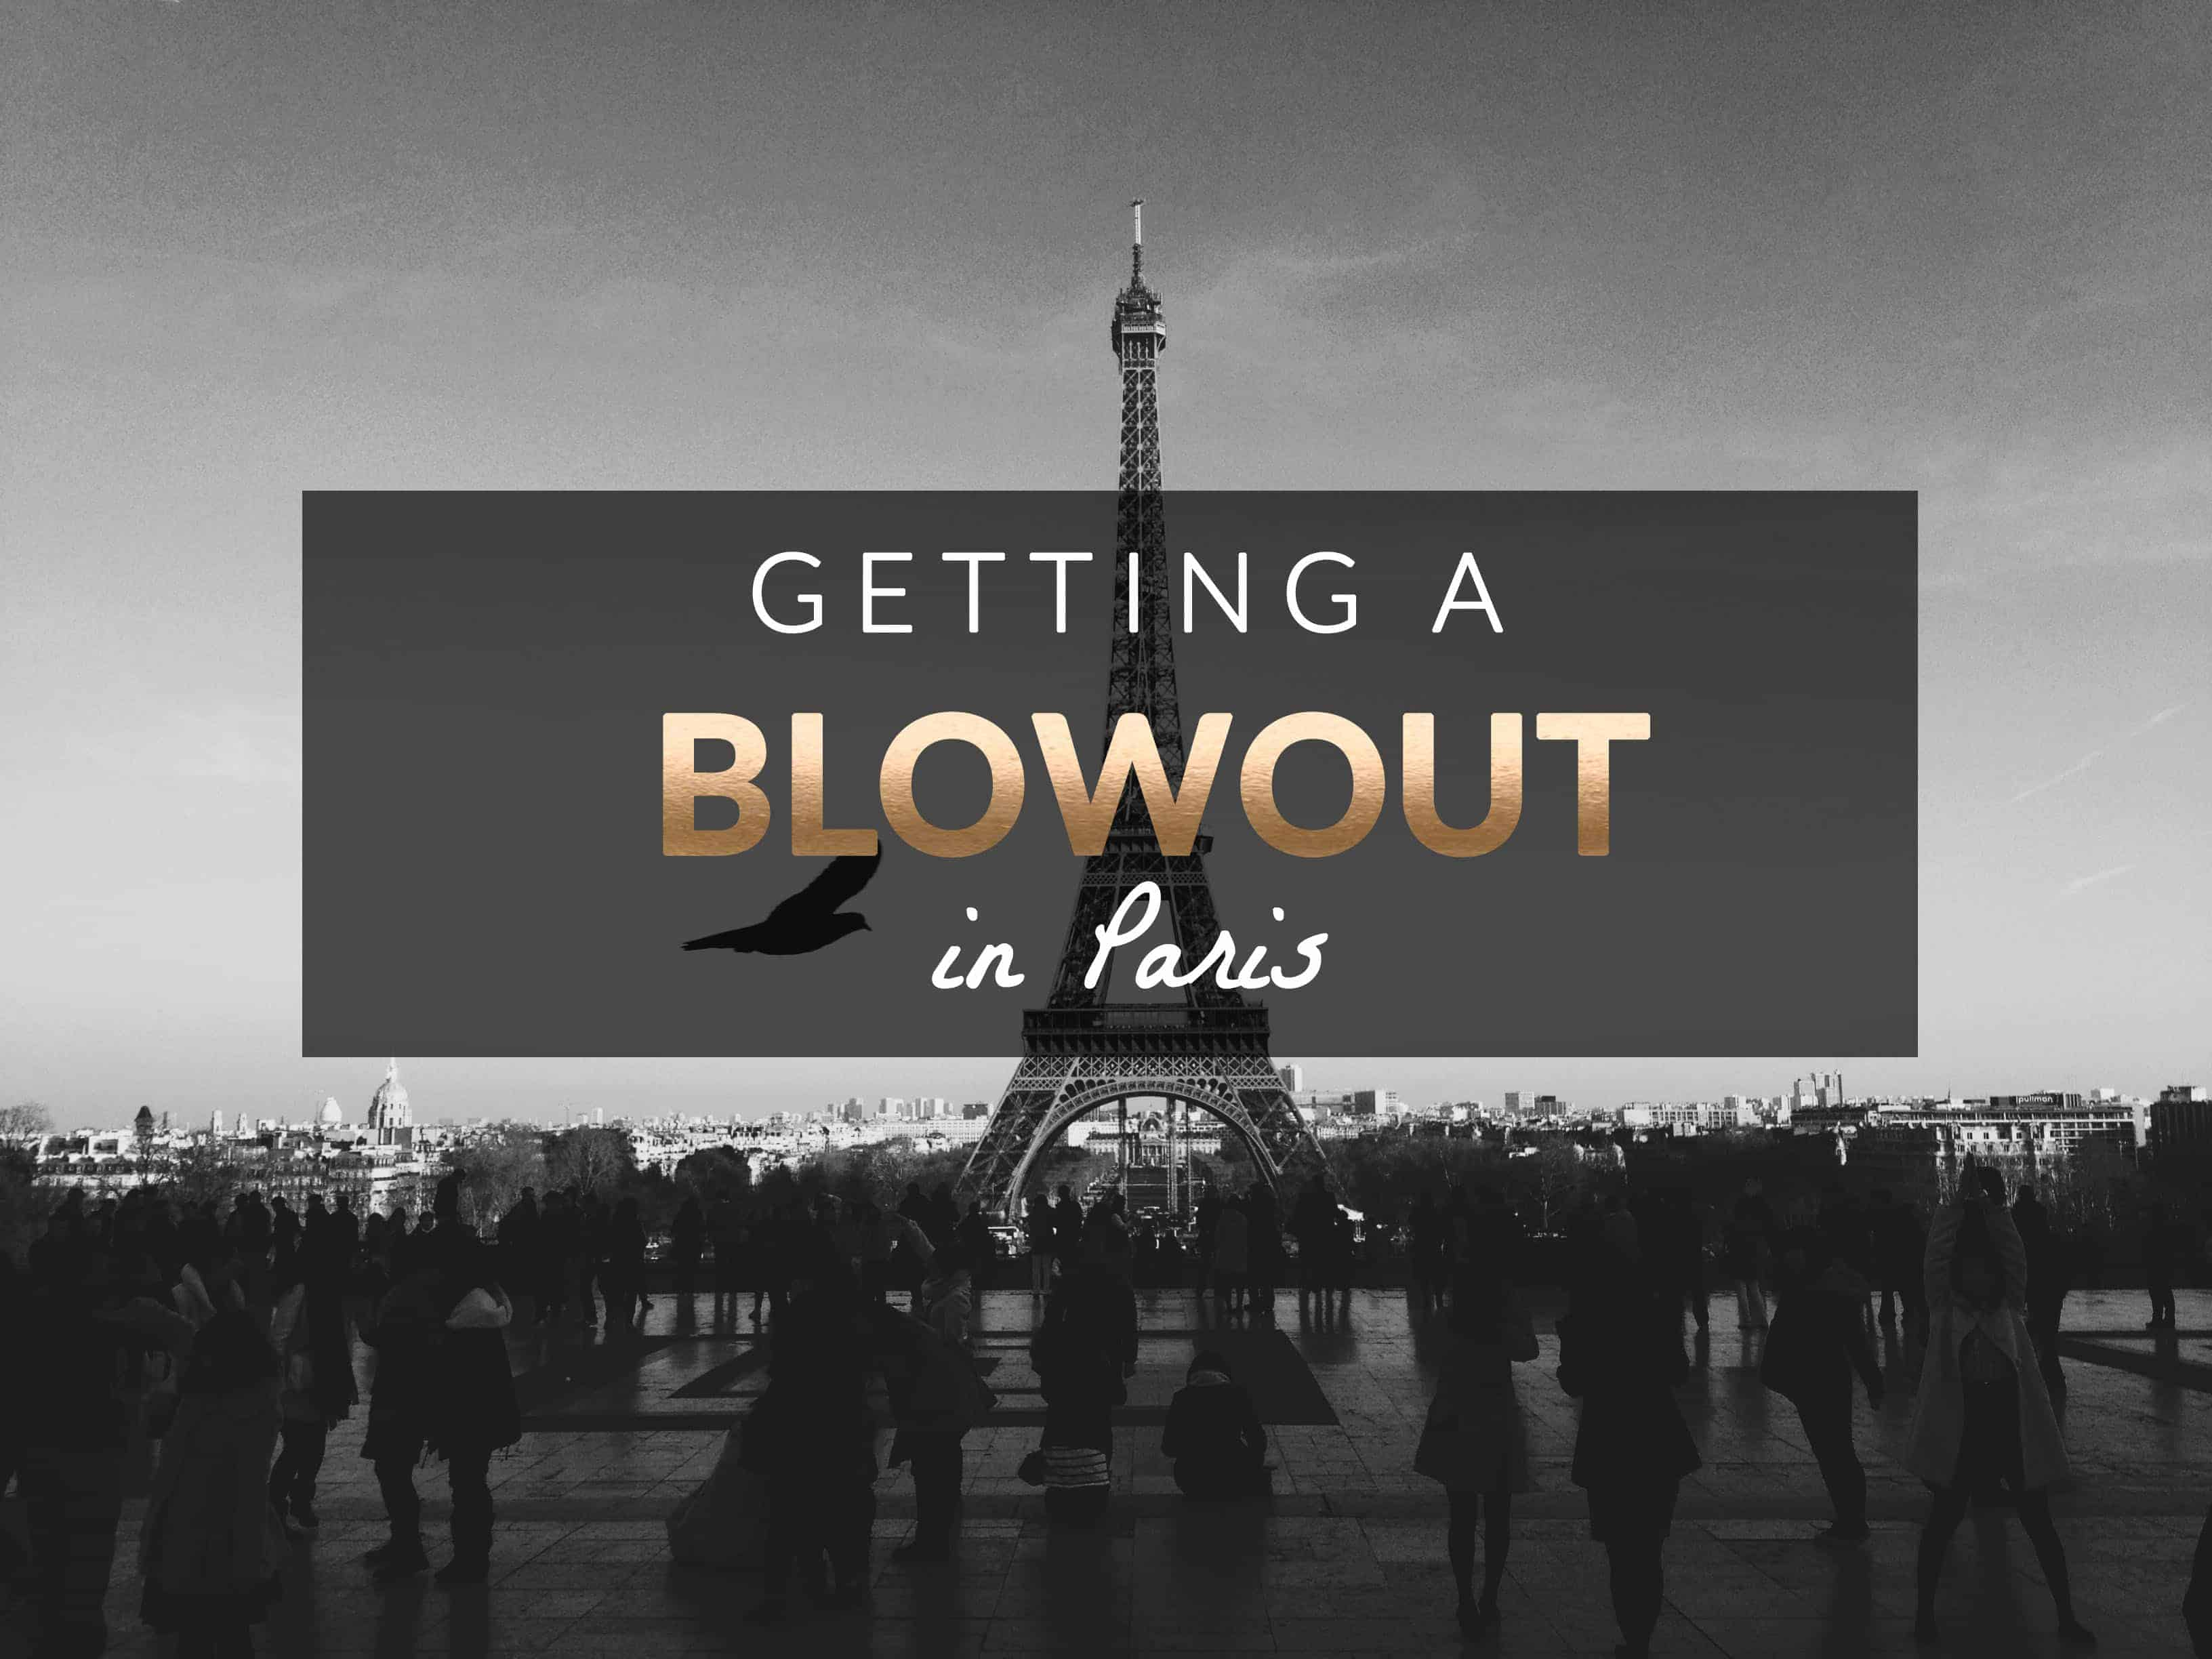 getting a blowout in paris